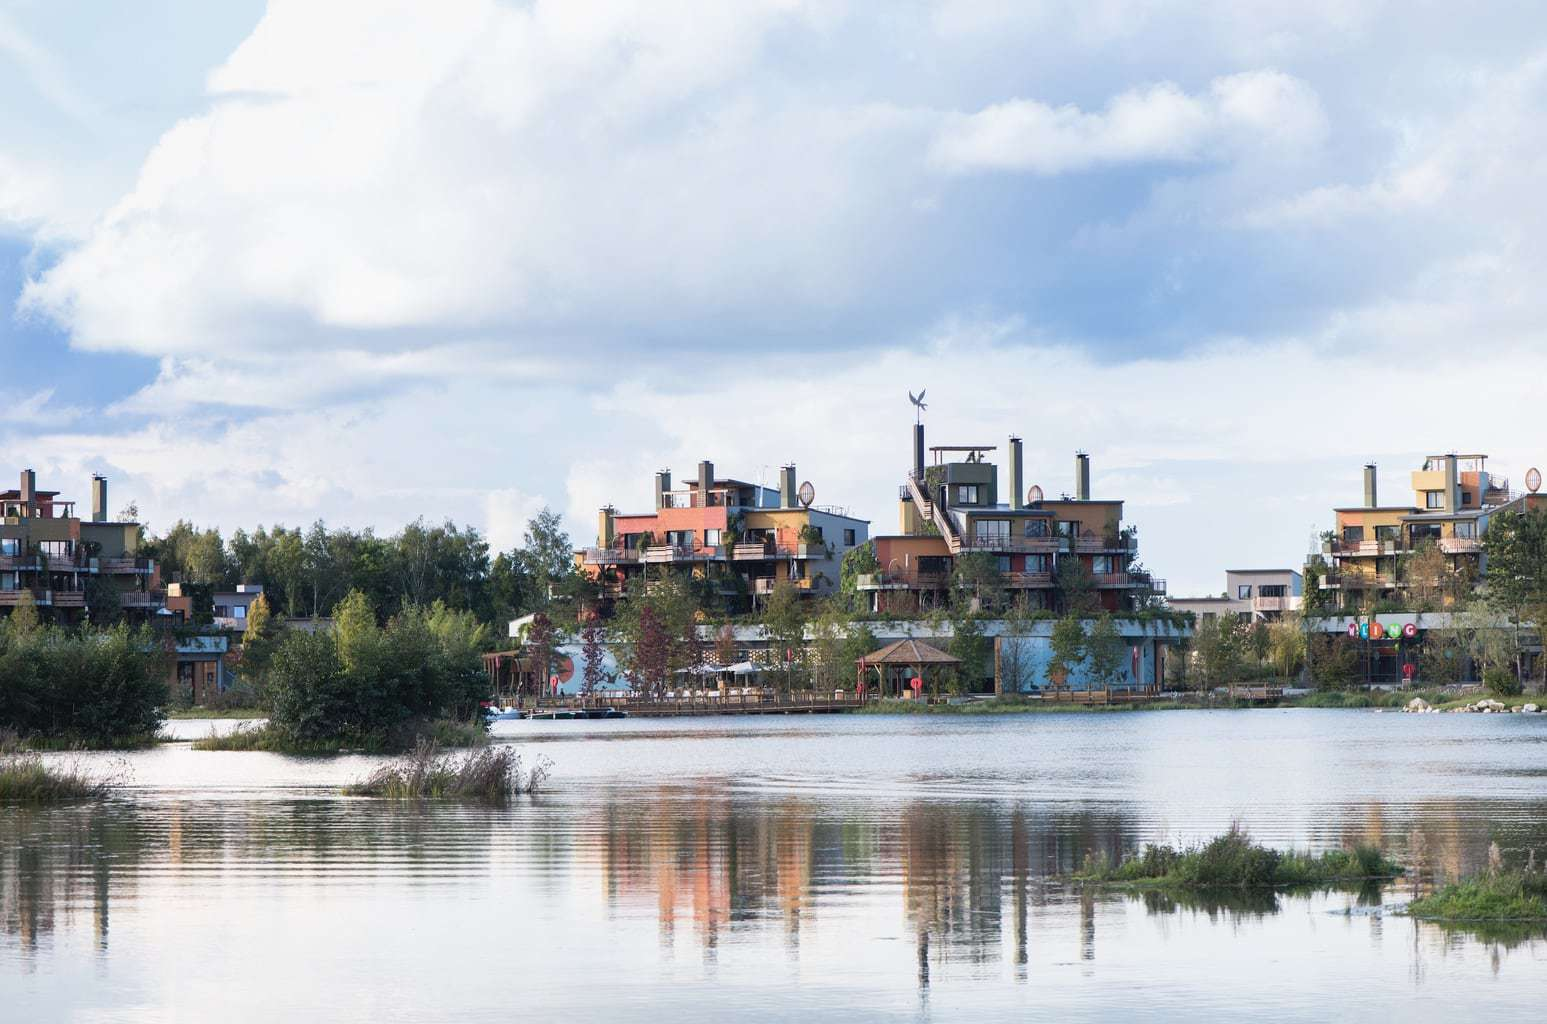 Villages Nature® Paris | Center Parcs and Euro Disney Combined? www.minitravellers.co.uk